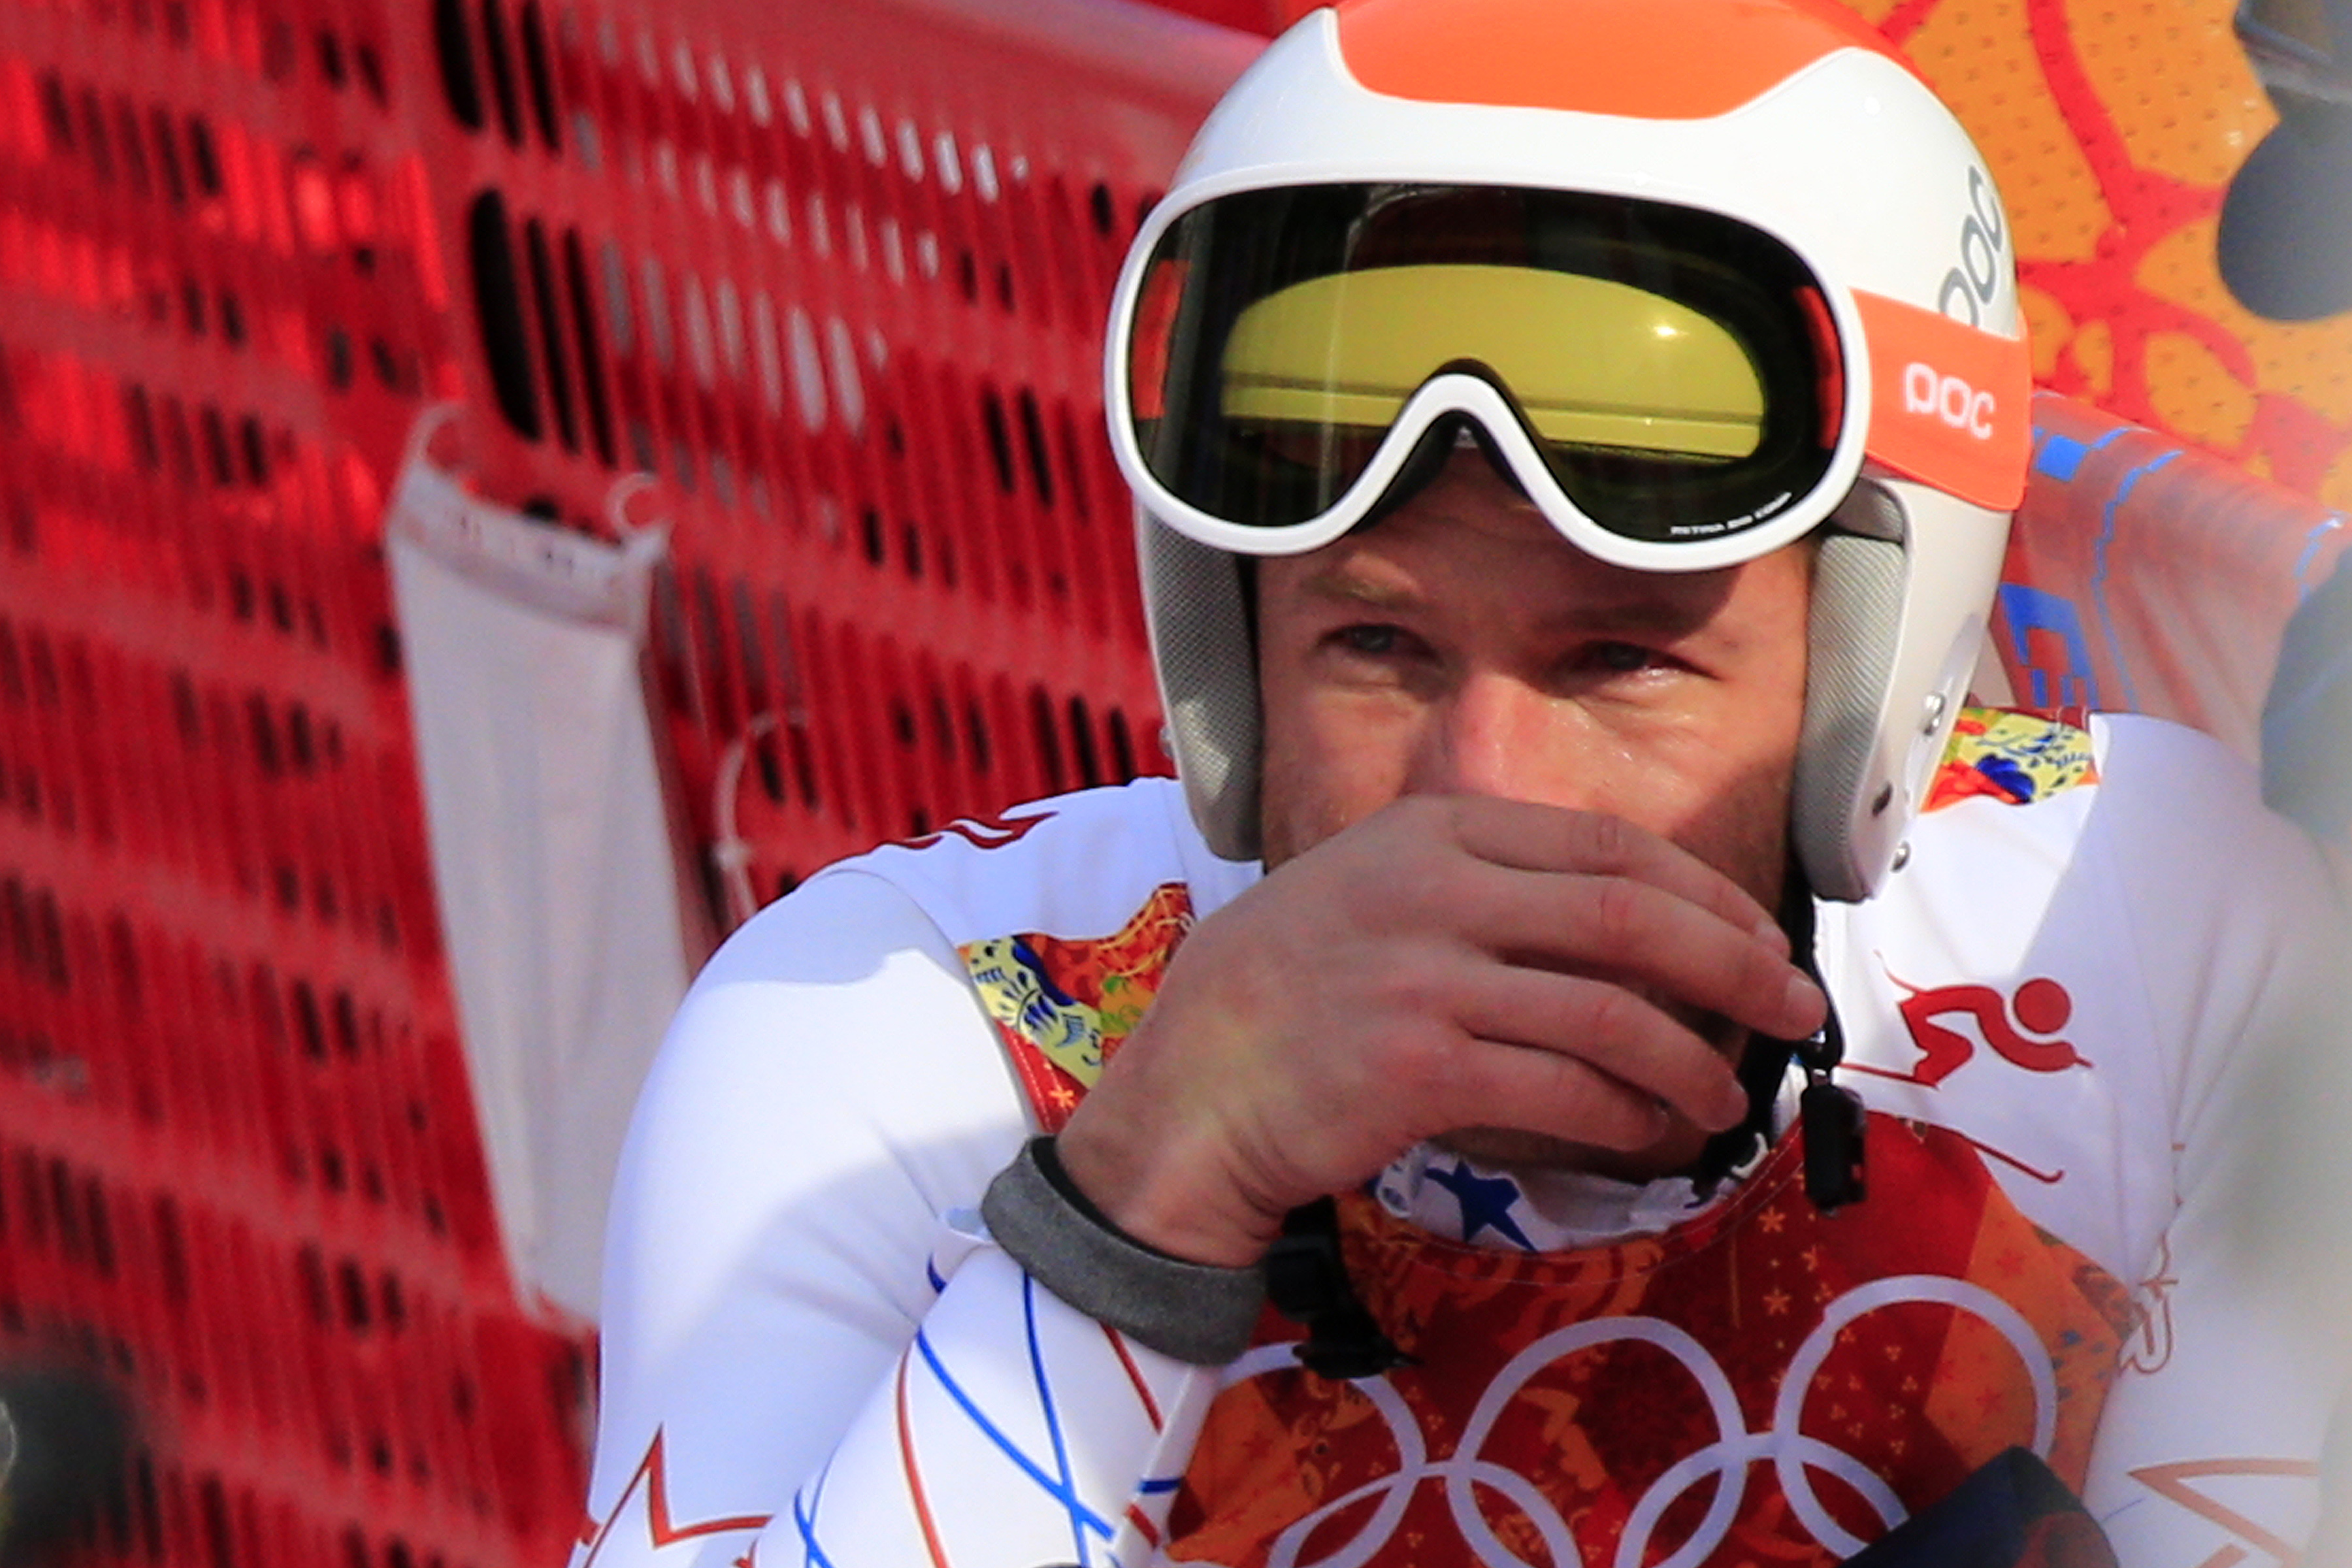 US skier Bode Miller cries after the Men's Alpine Skiing Super-G at the Rosa Khutor Alpine Center during the Sochi Winter Olympics on February 16, 2014.